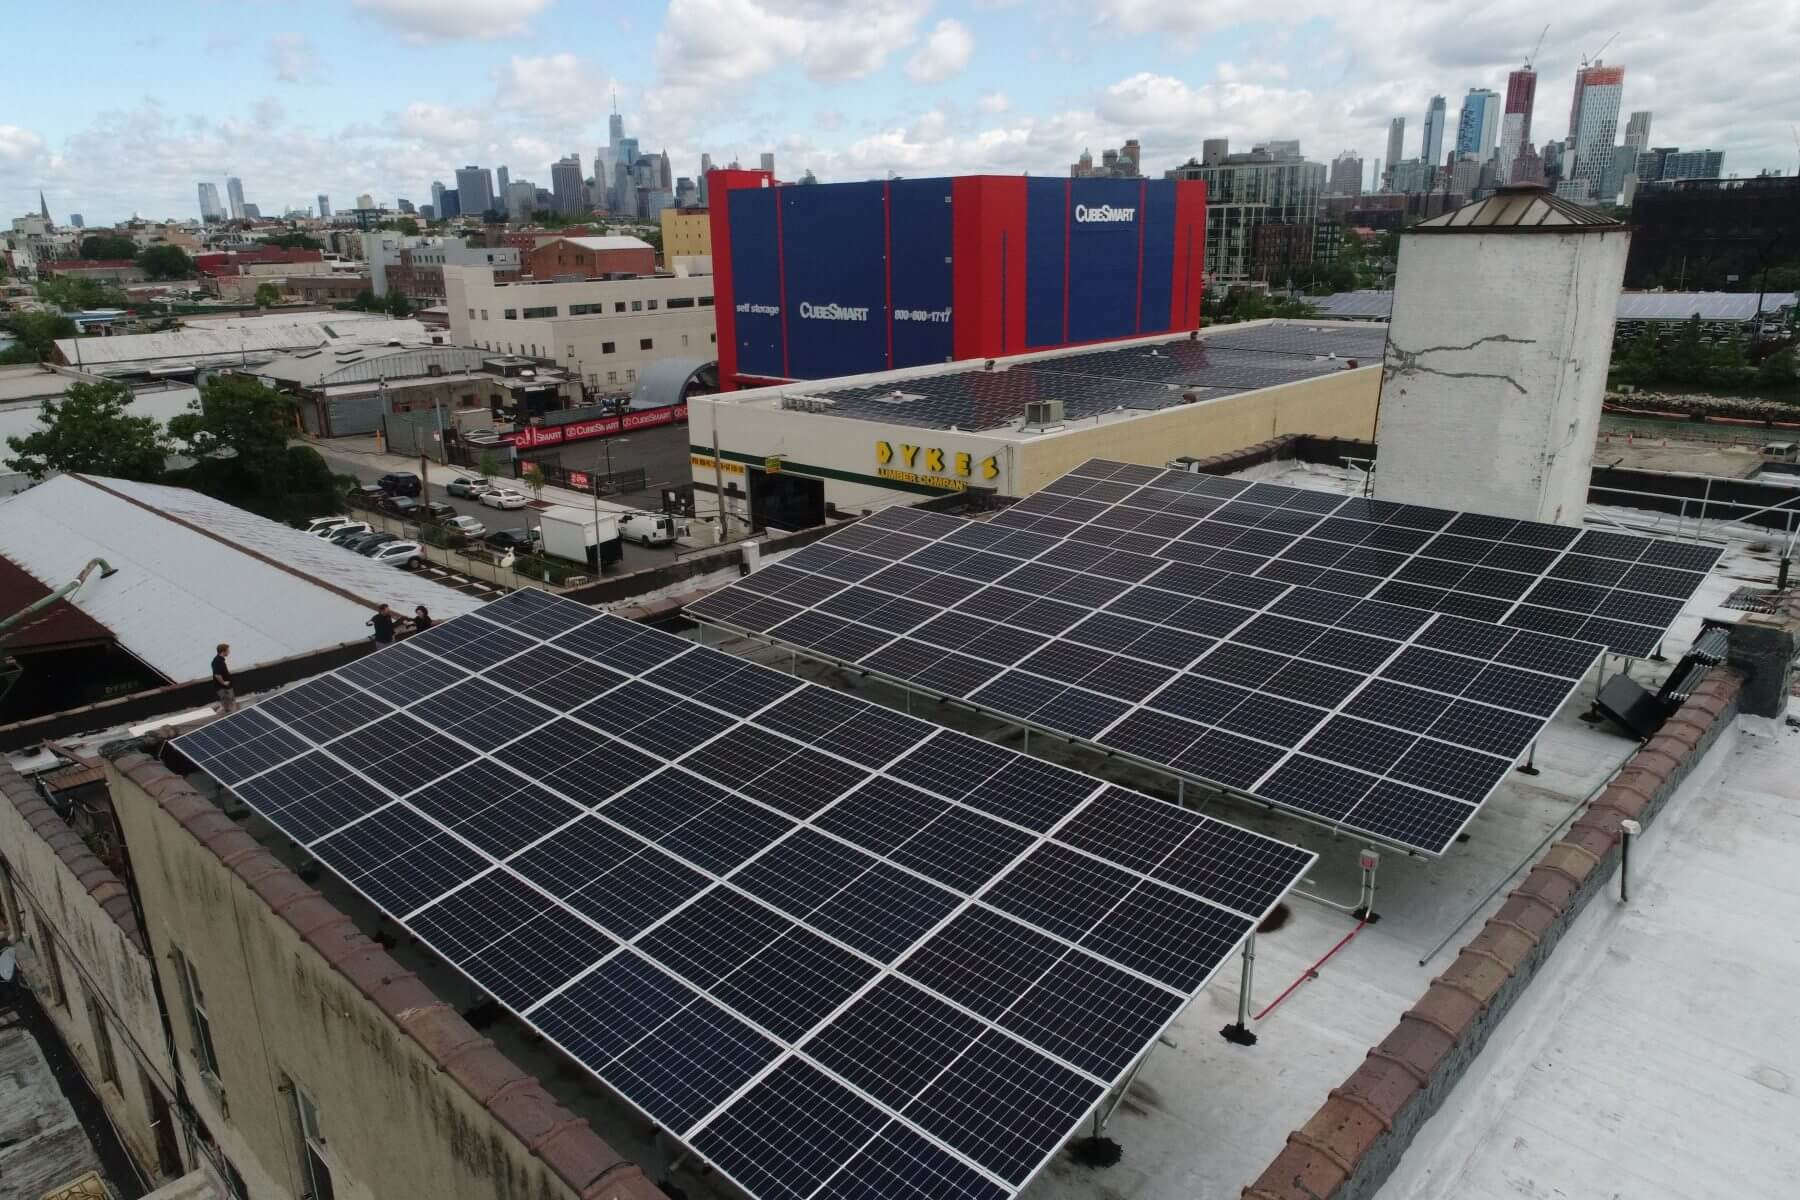 A 32 KW Tilt Rack installation on BSW's Gowanus headquarters. The electricity generated by the system is credited directly to BSW team member's monthly ConEd bills using community solar.